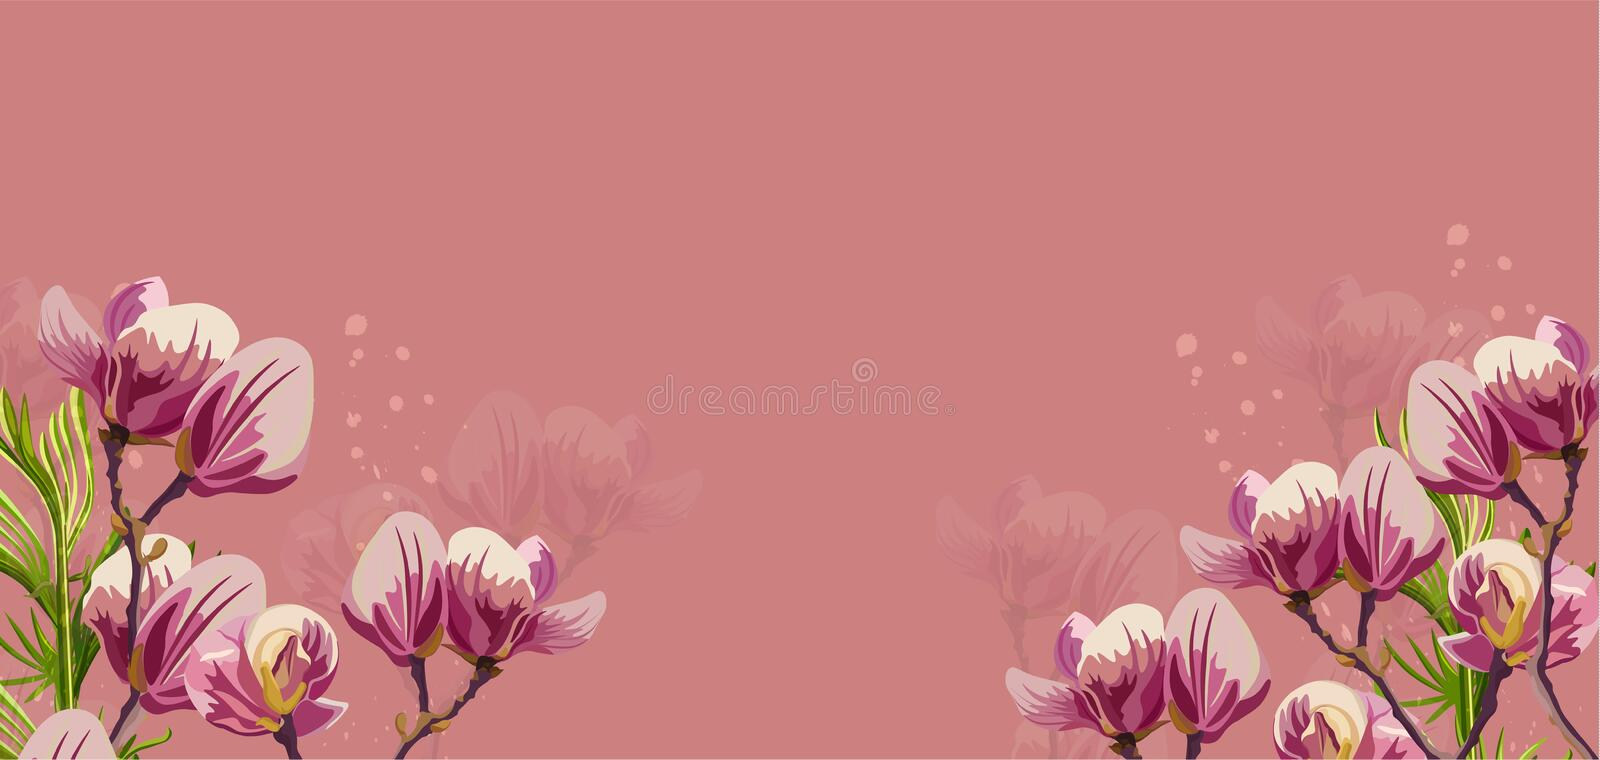 Magnolia flowers Vector on pink background. Beautiful card templates. Magnolia flowers Vector on pink background. Beautiful card template vector illustration